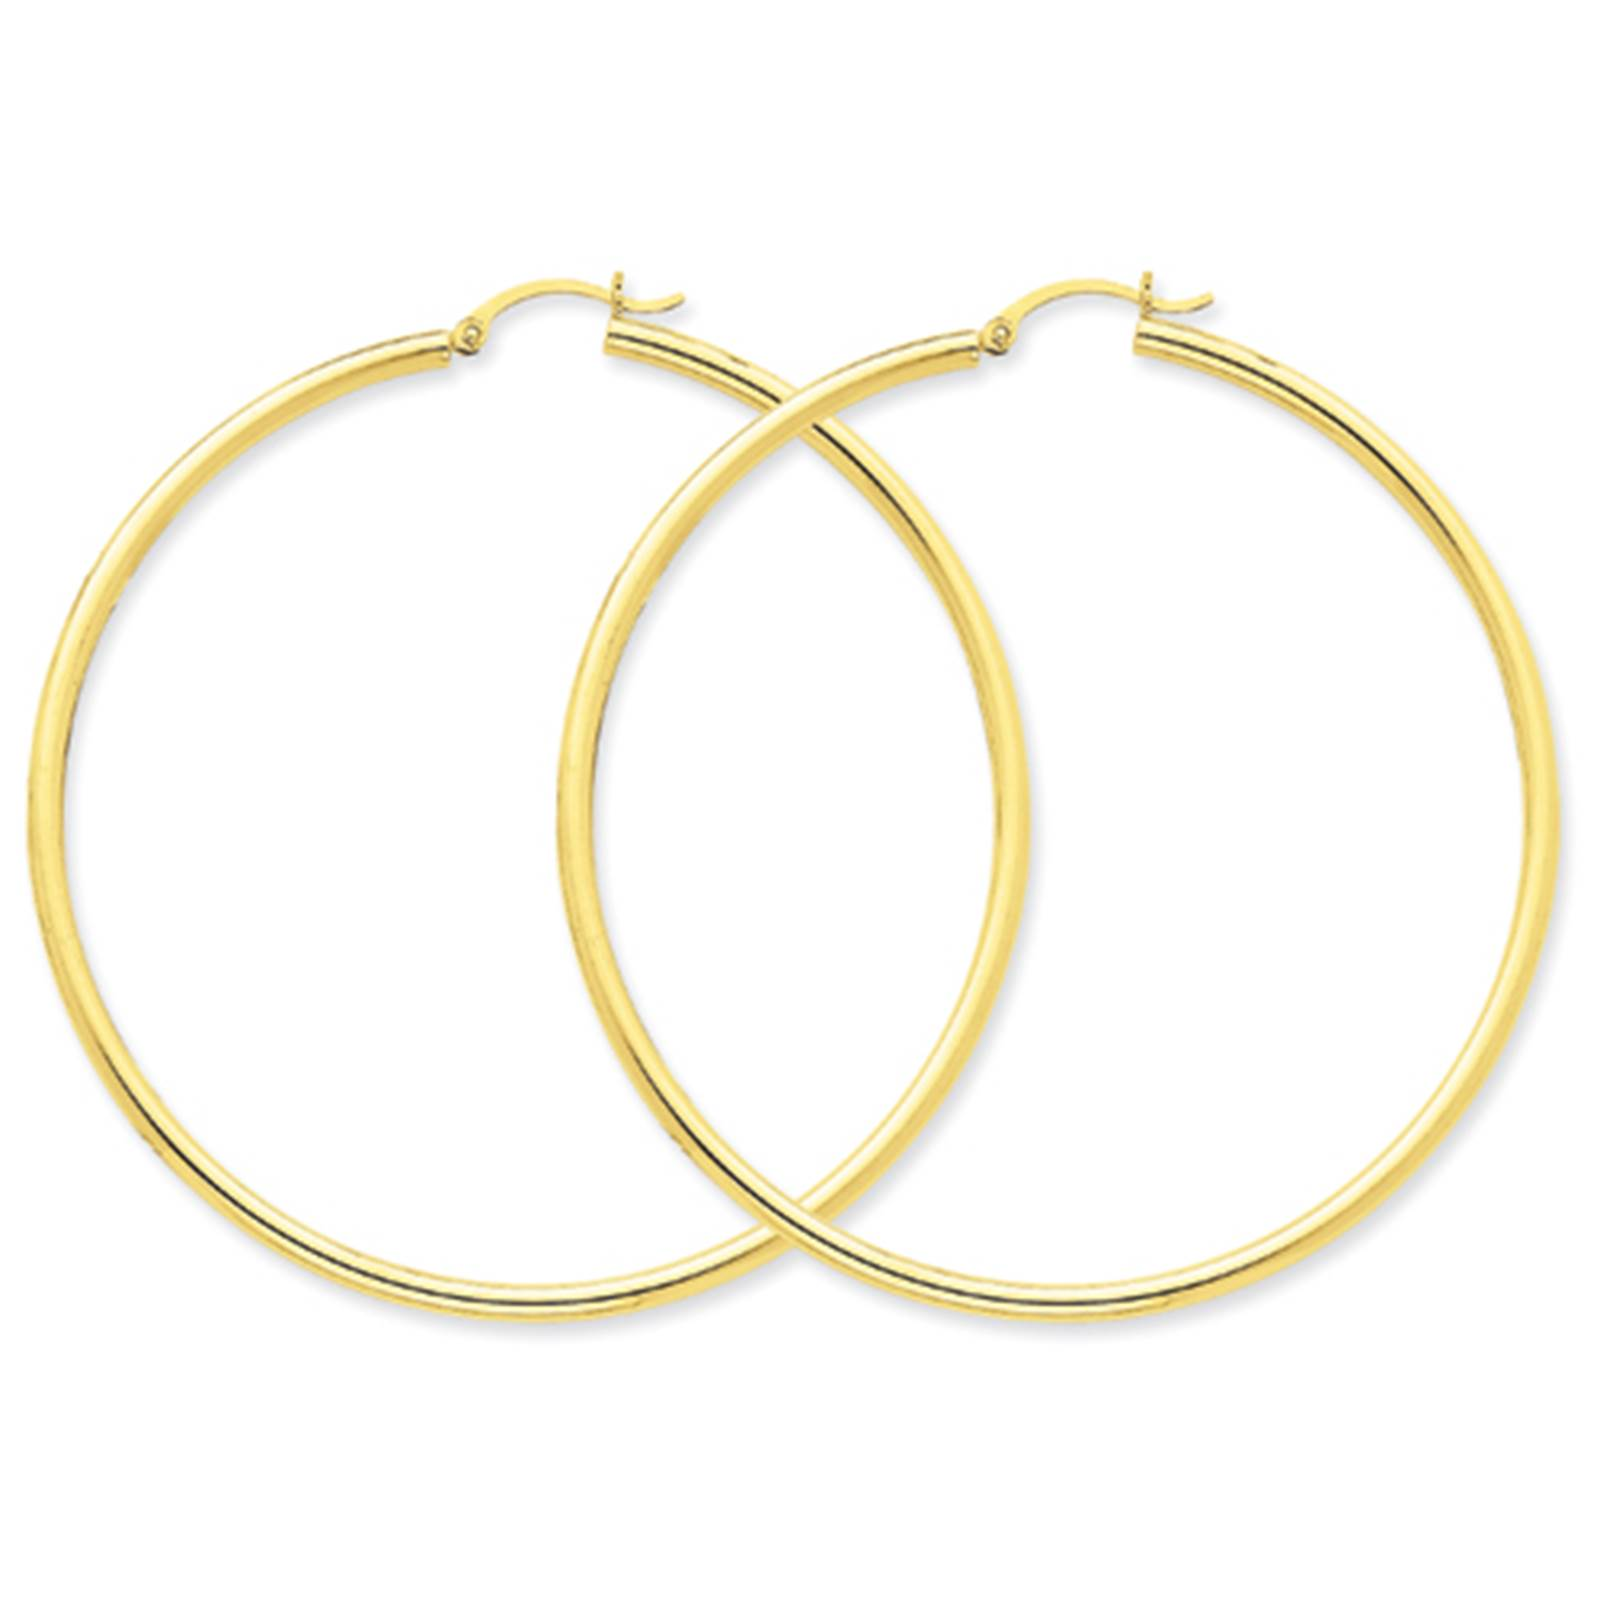 10k Polished 2.5mm Round Hoop Earrings